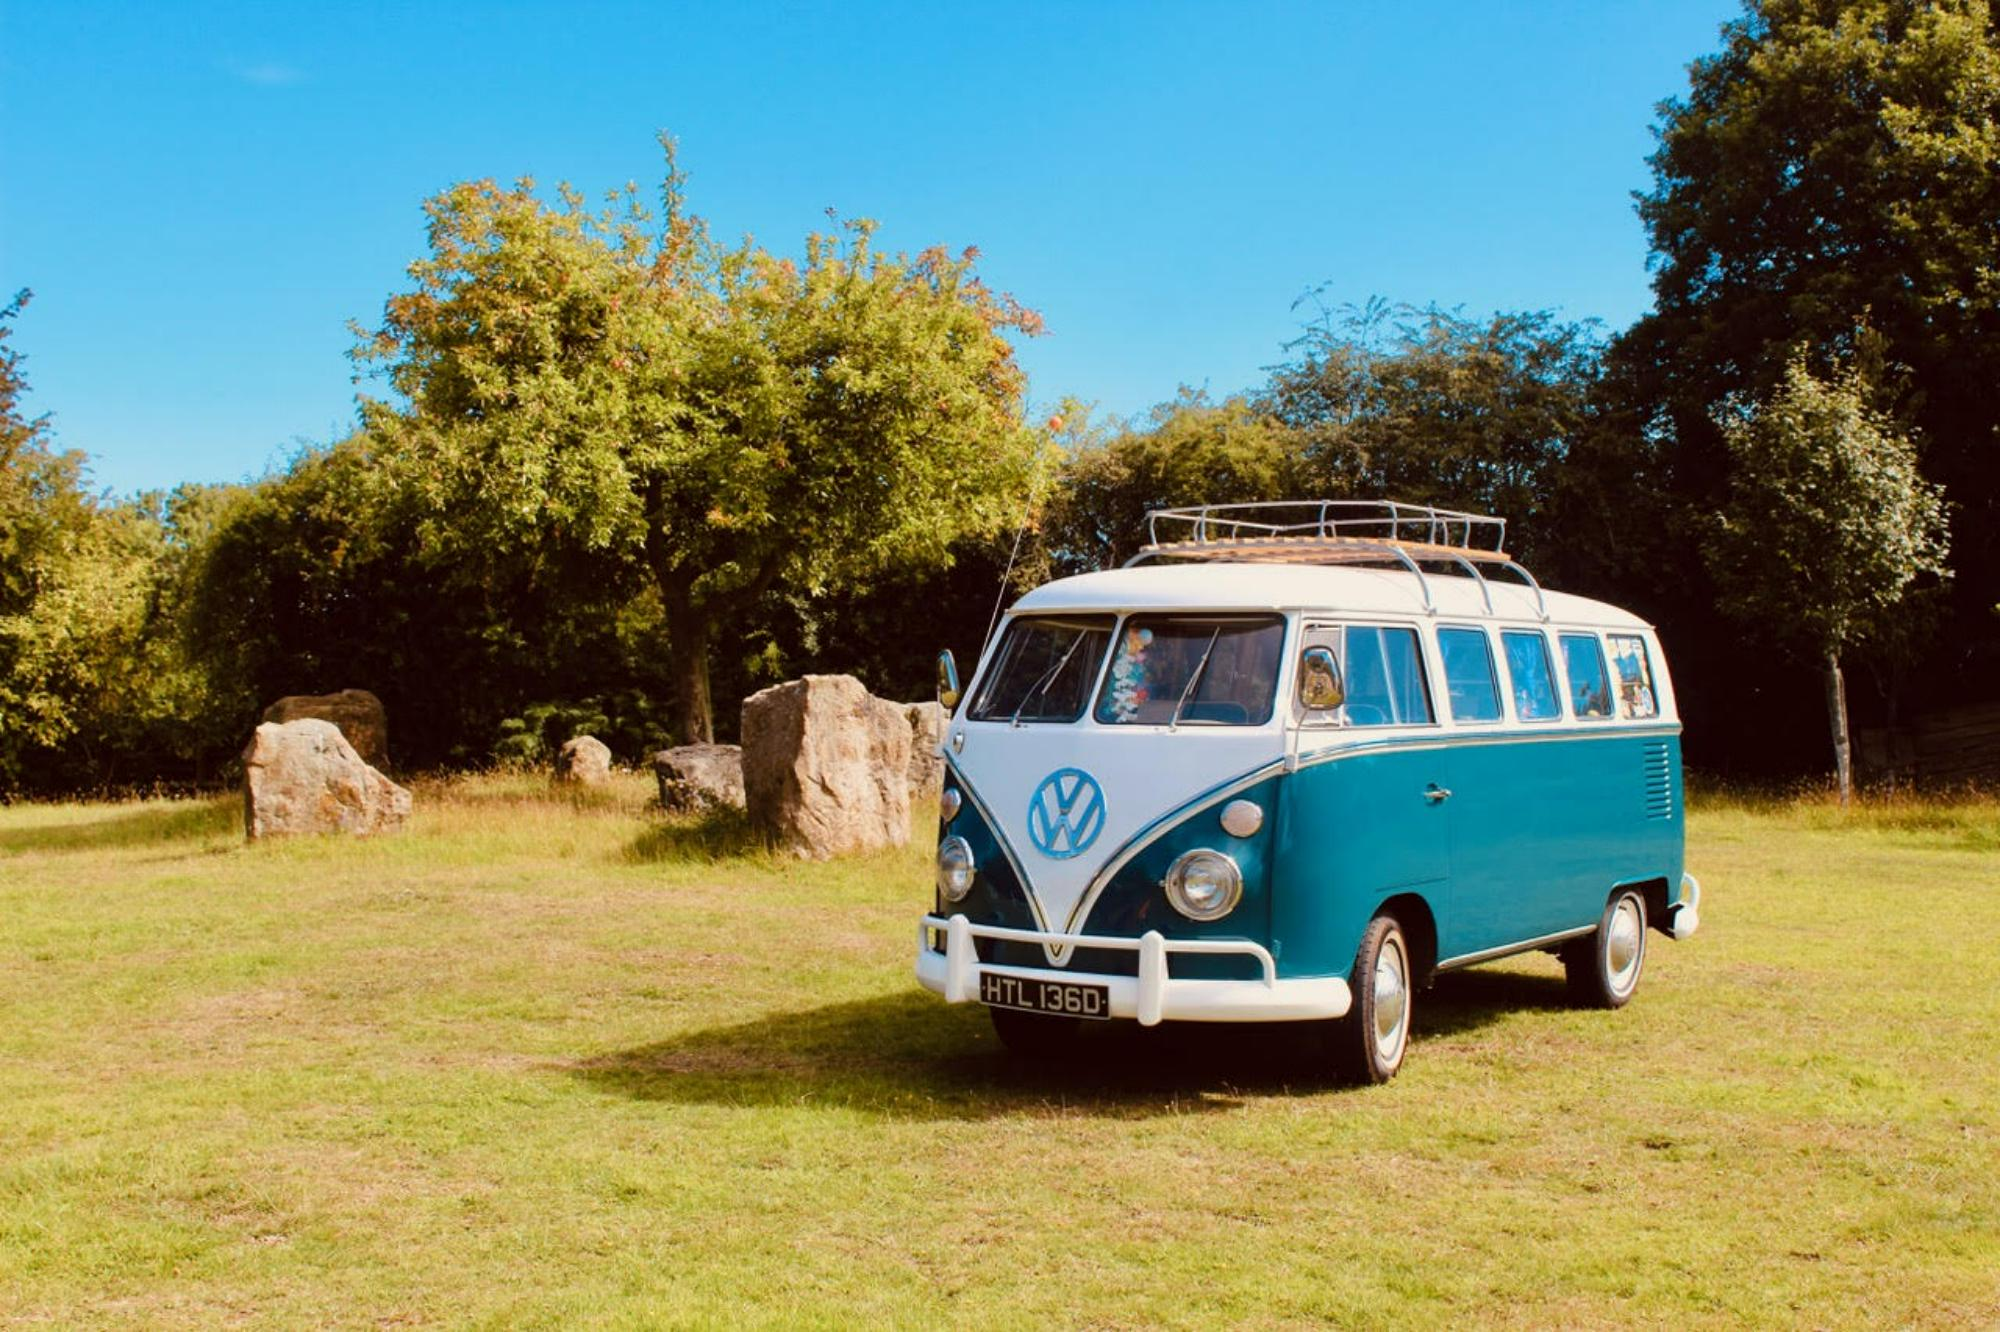 Campervan Hire in Worcestershire | Campervan Rental Companies in Worcestershire